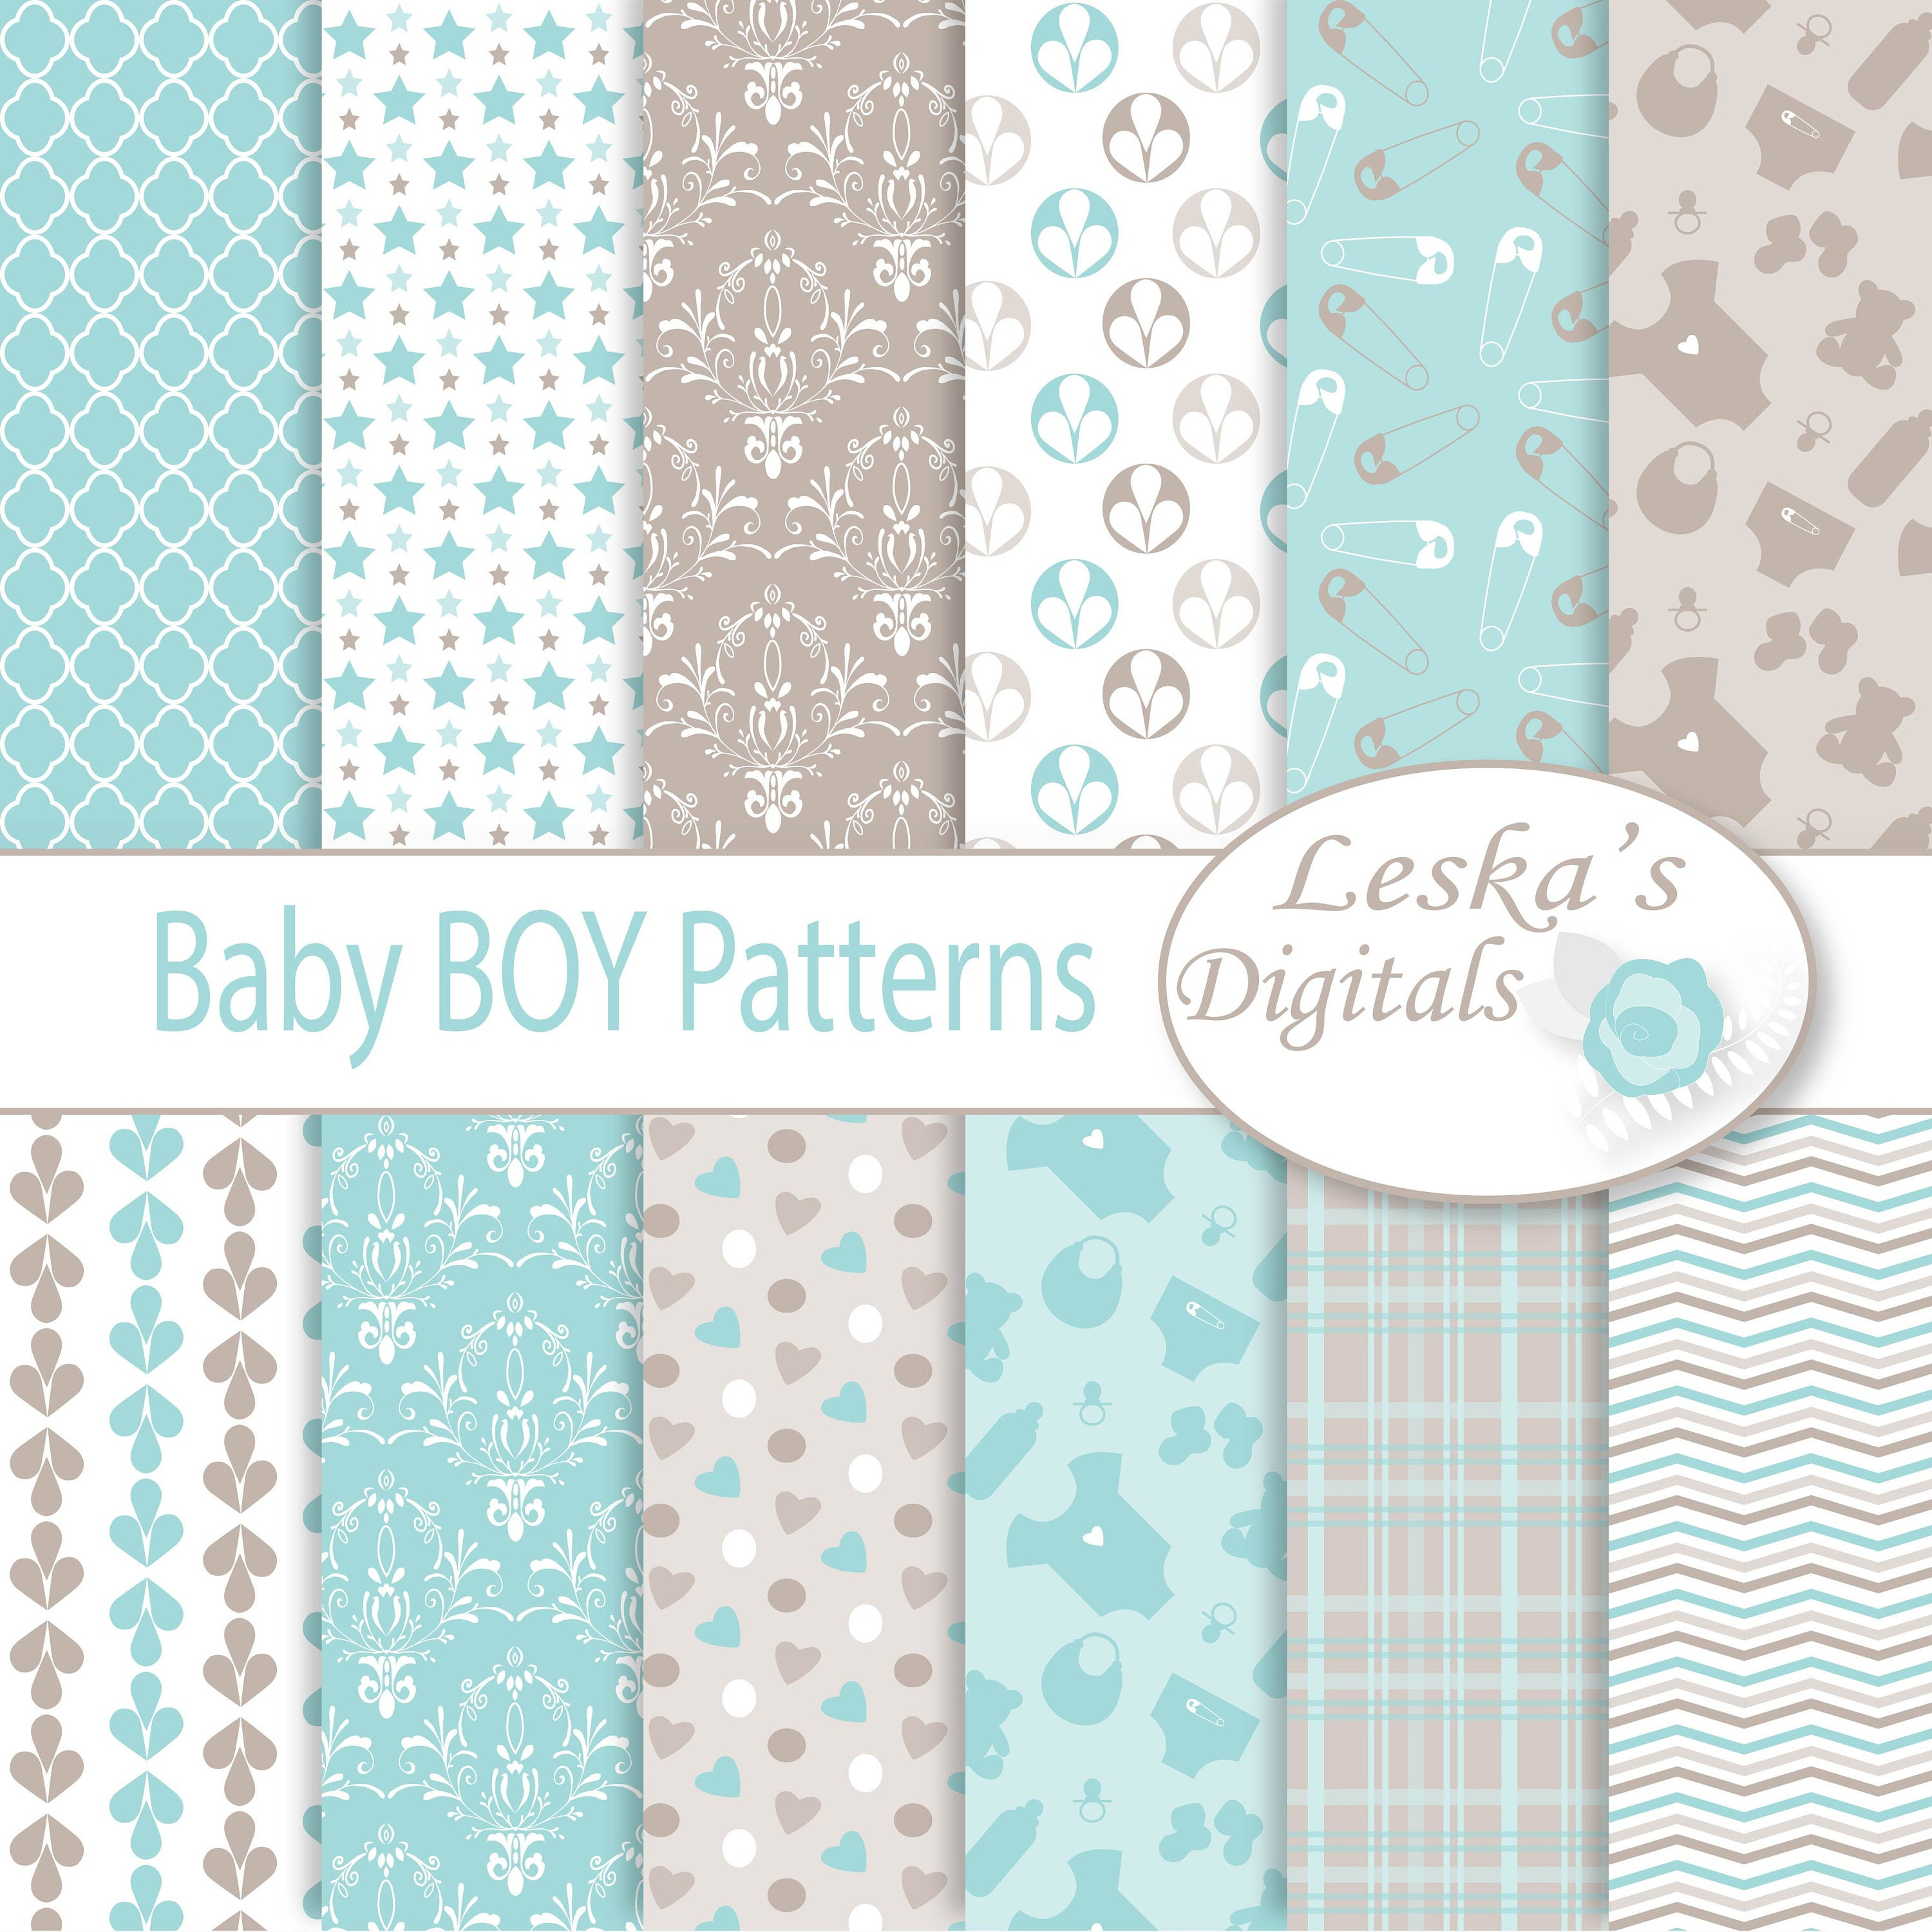 BABY BOY fondo Baby Boy papel Digital descarga Digital | Etsy